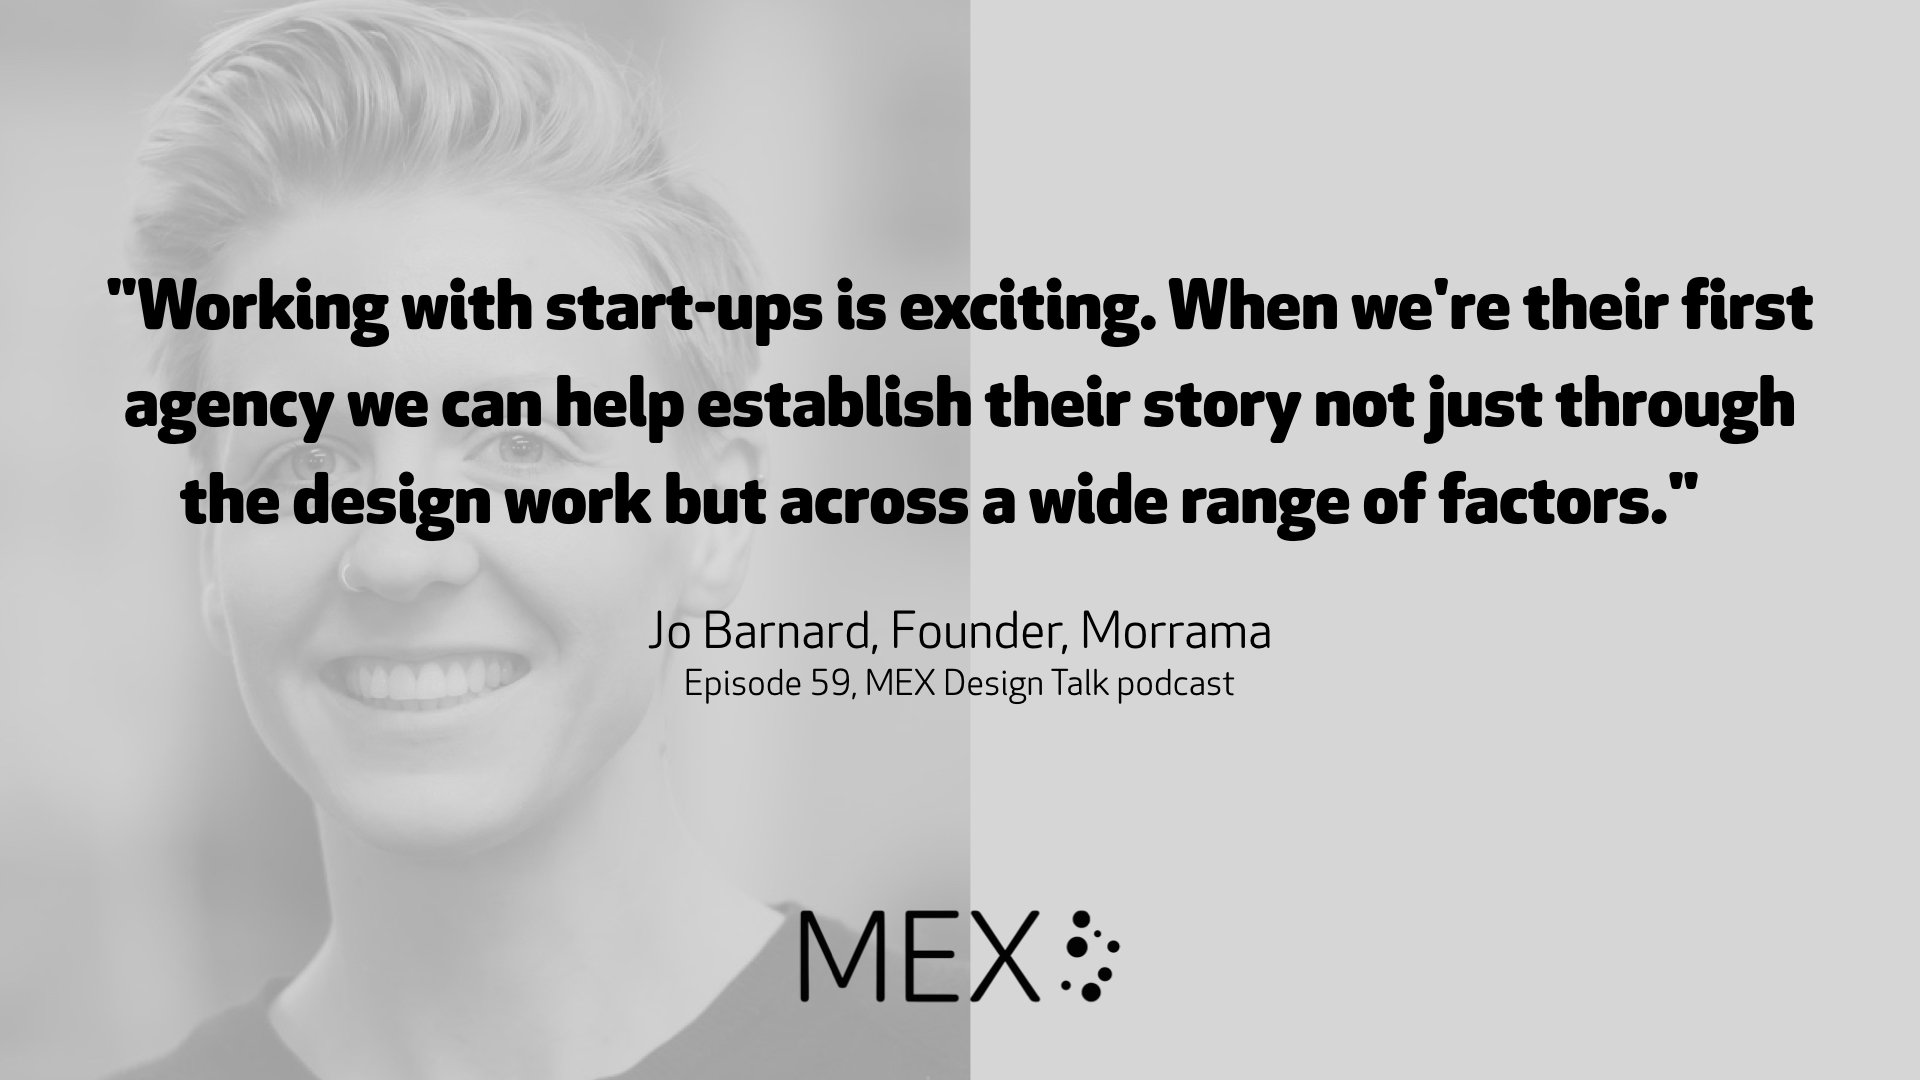 """Working with start-ups is exciting. When we're their first agency we can help establish their story not just through the design work but across a wide range of factors."" Jo Barnard, Founder, Morrama Episode 59, MEX Design Talk podcast"